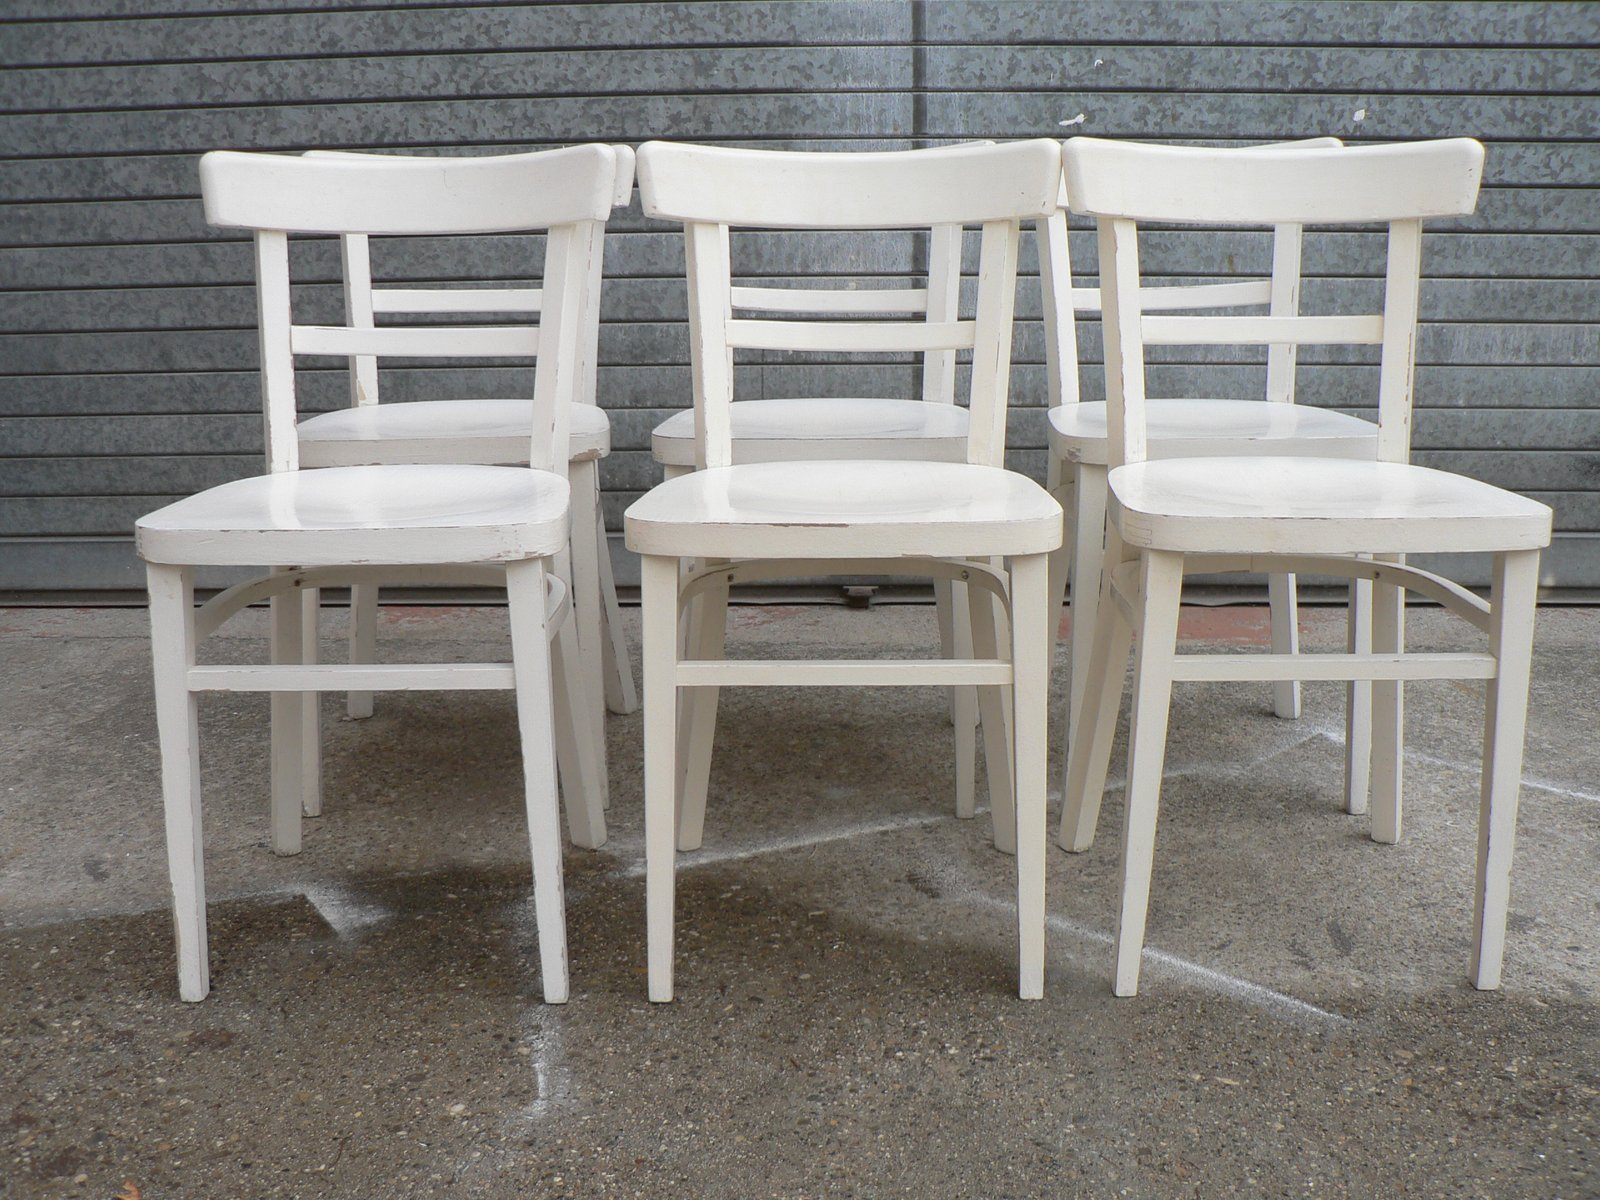 Vintage White Bistro Chairs Set of 6 for sale at Pamono